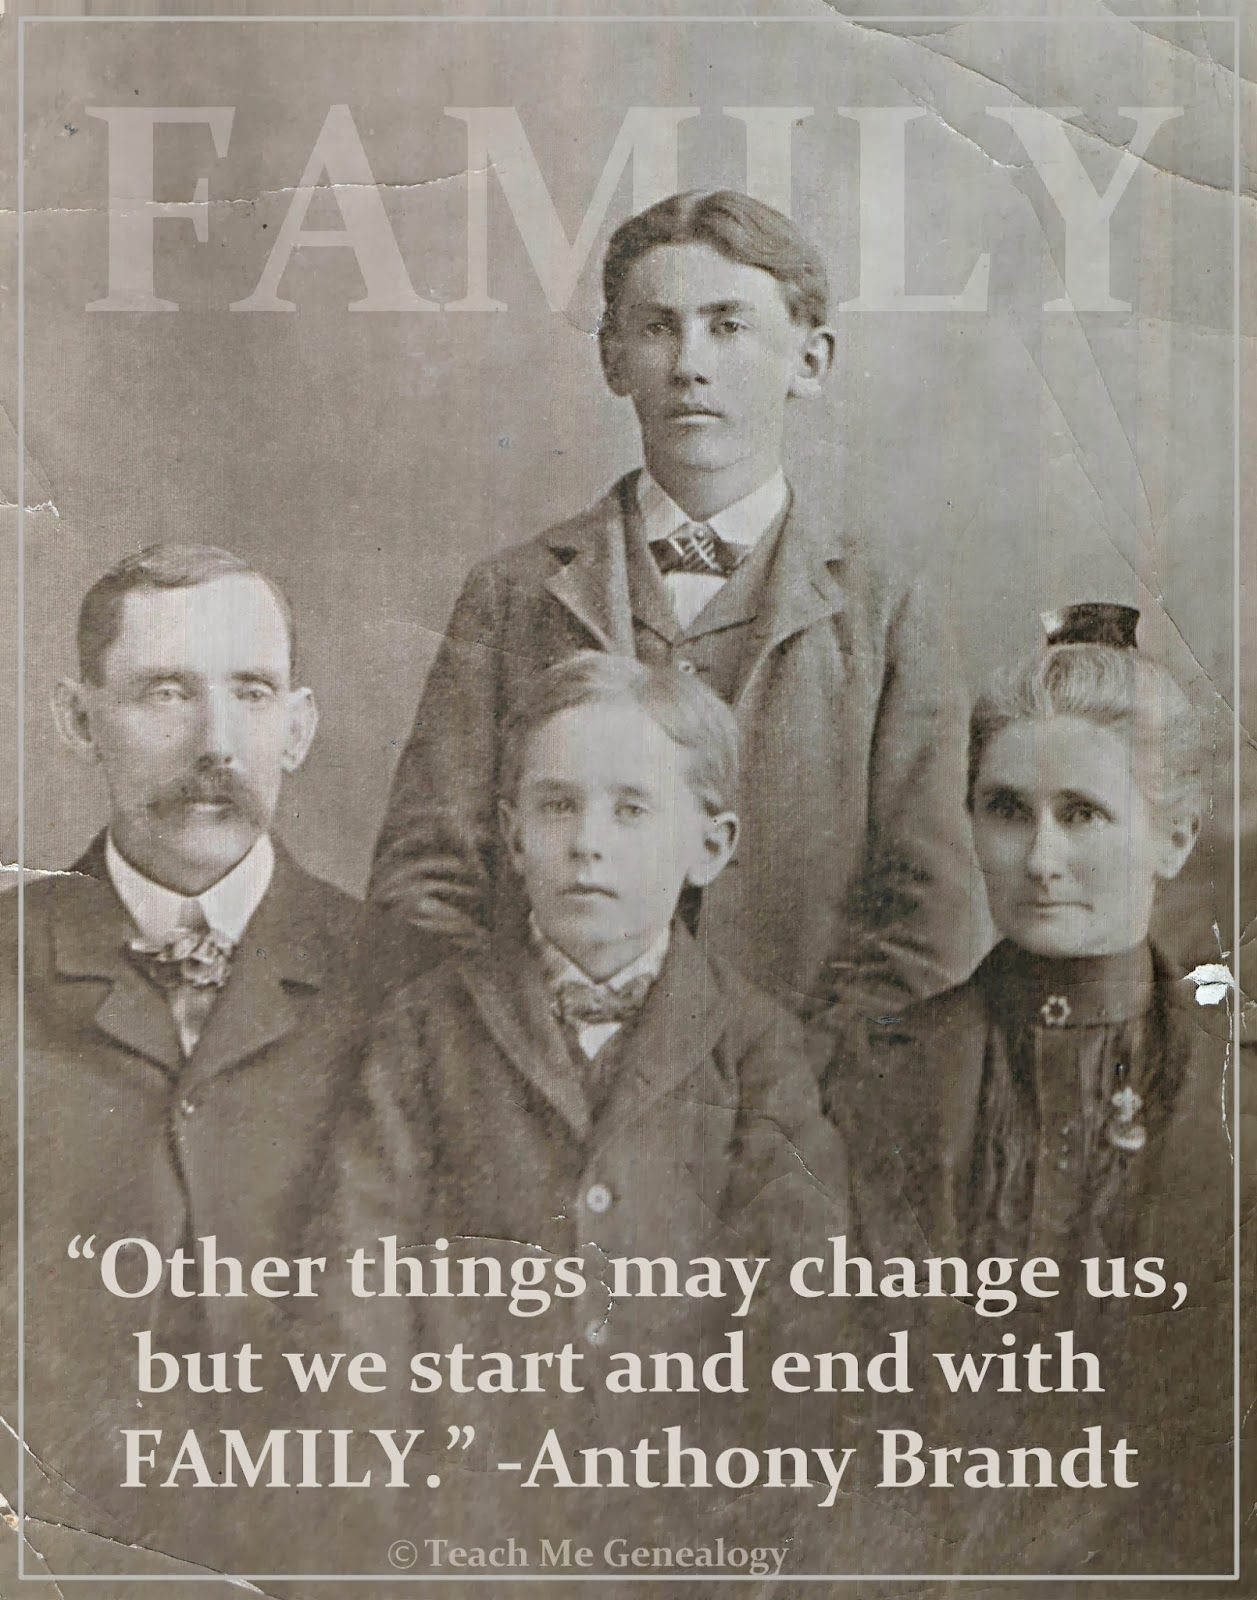 """FAMILY QUOTE: """"Other things may change us, but we start and end with FAMILY."""" Anthony Brandt (Teach Me Genealogy)"""